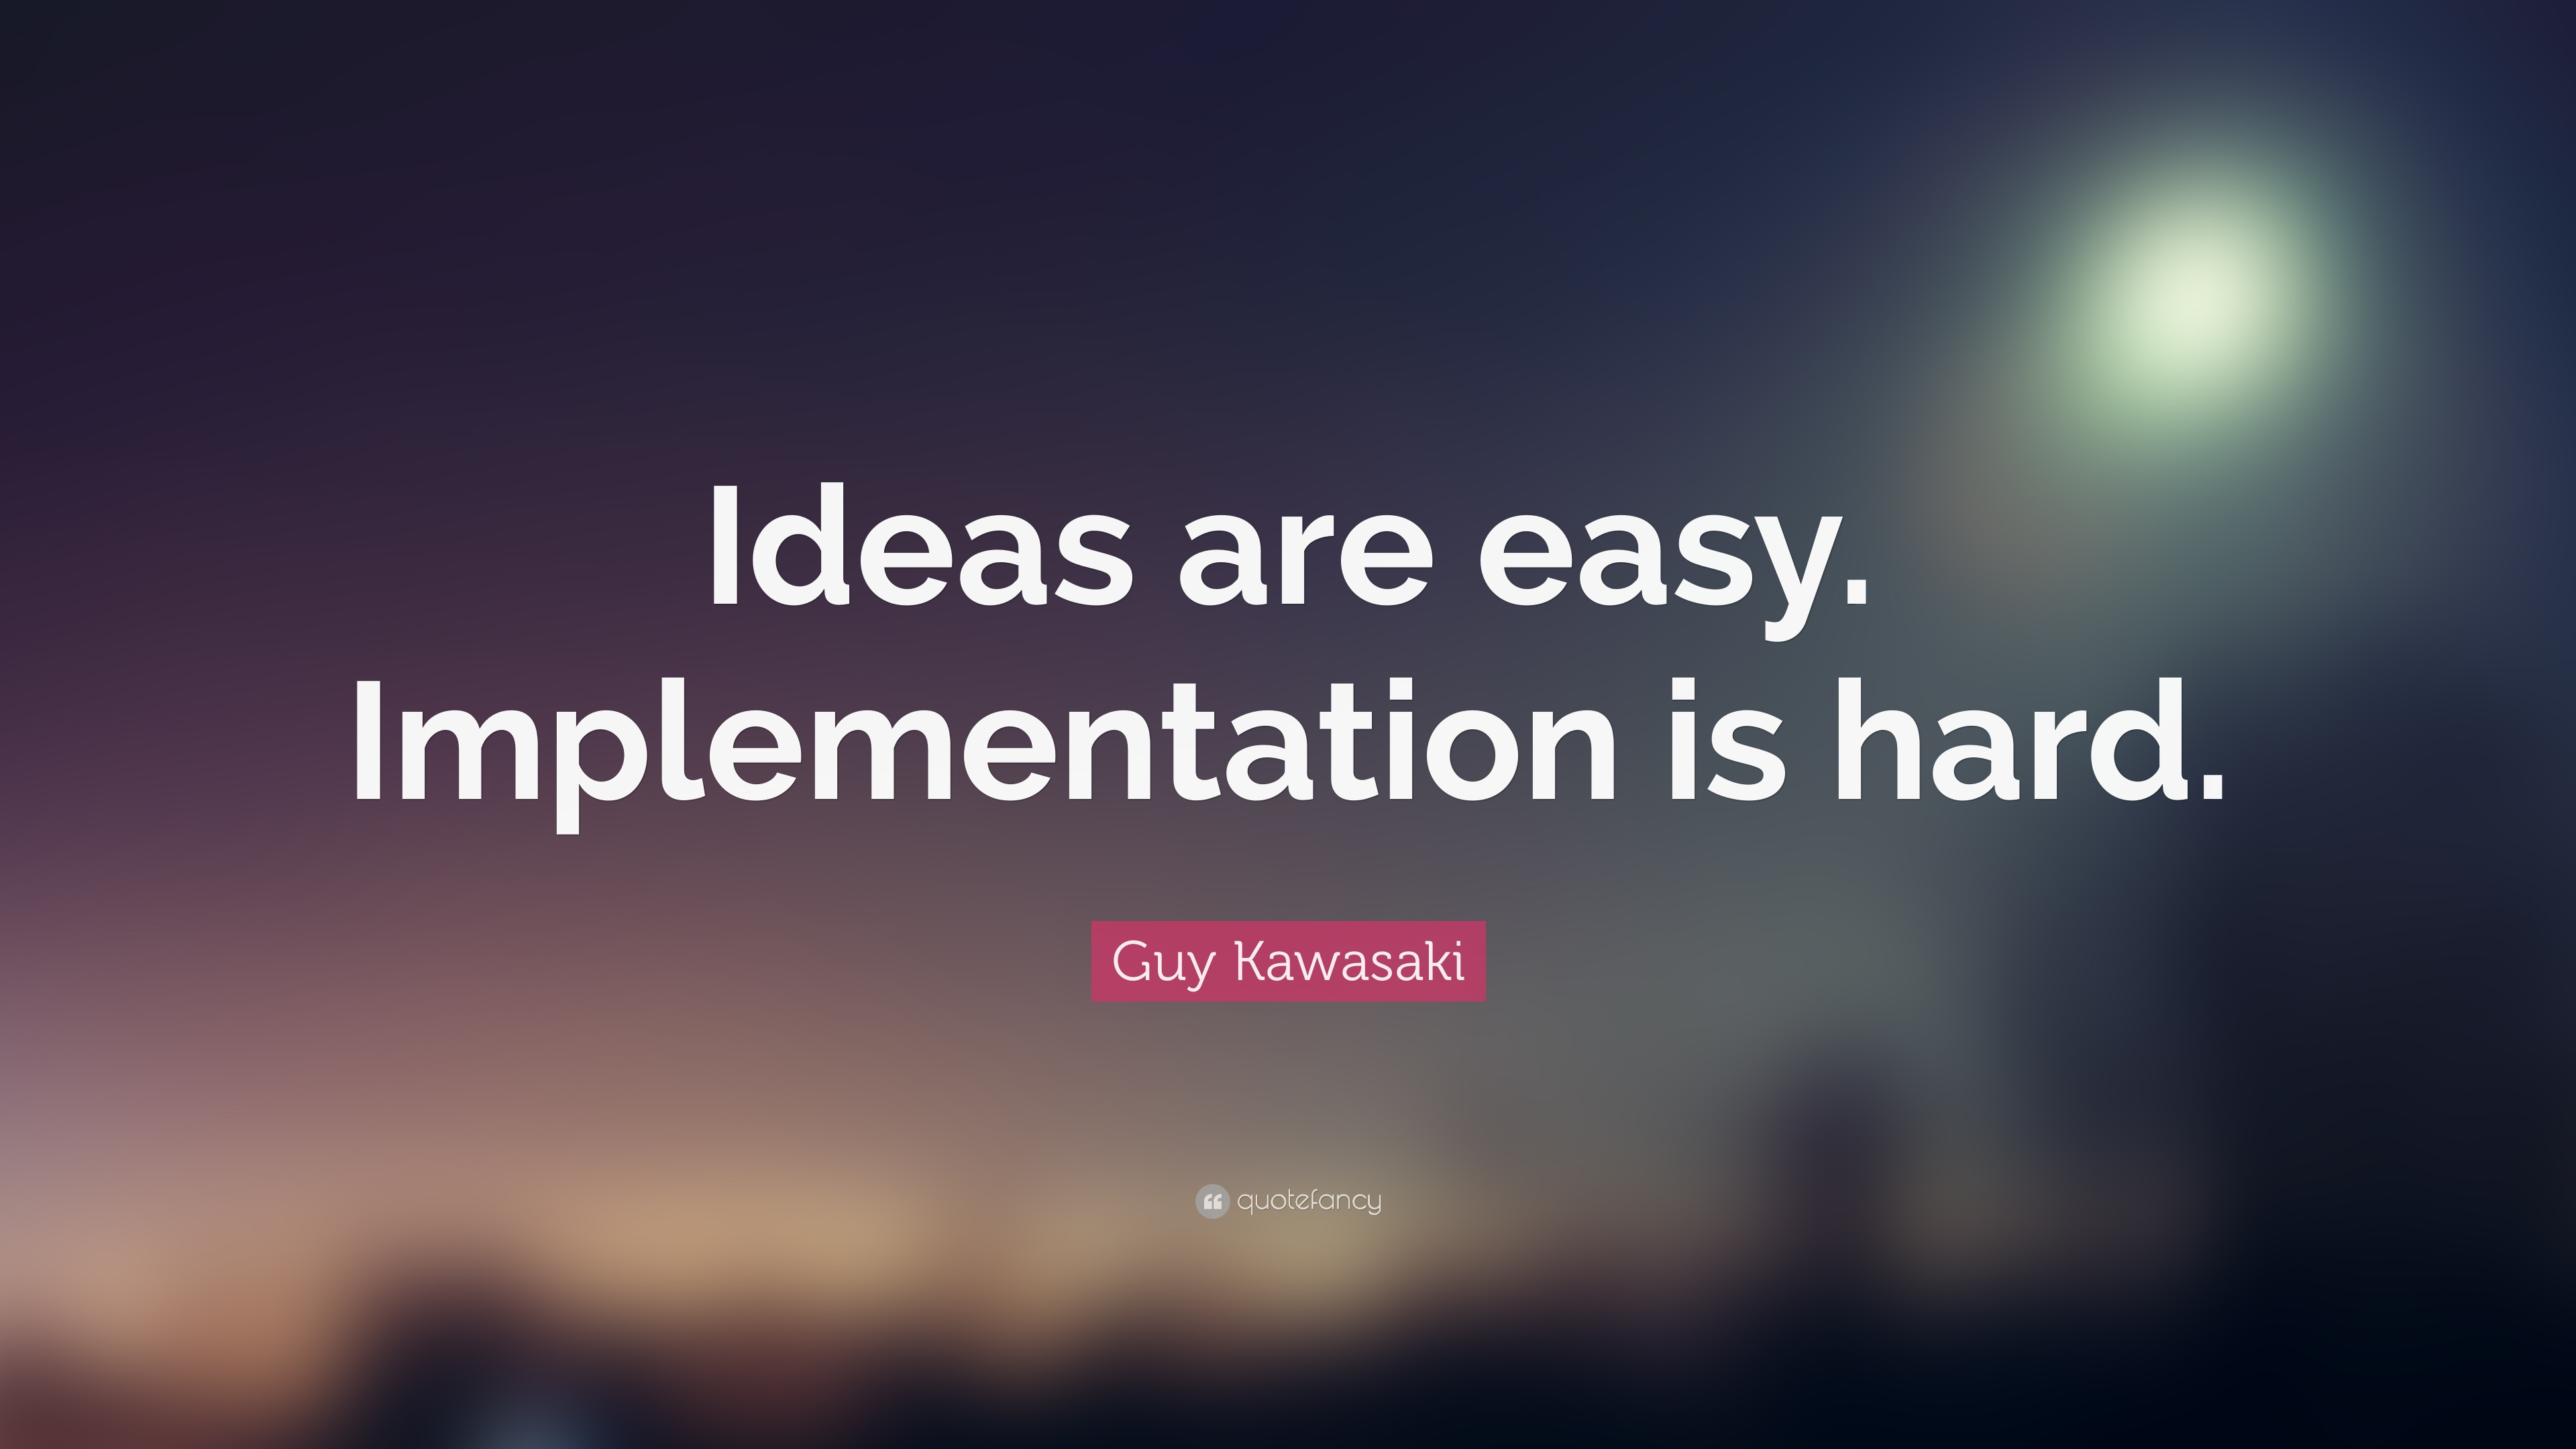 Implementation Ideas Are Easy Is Hard Quotes